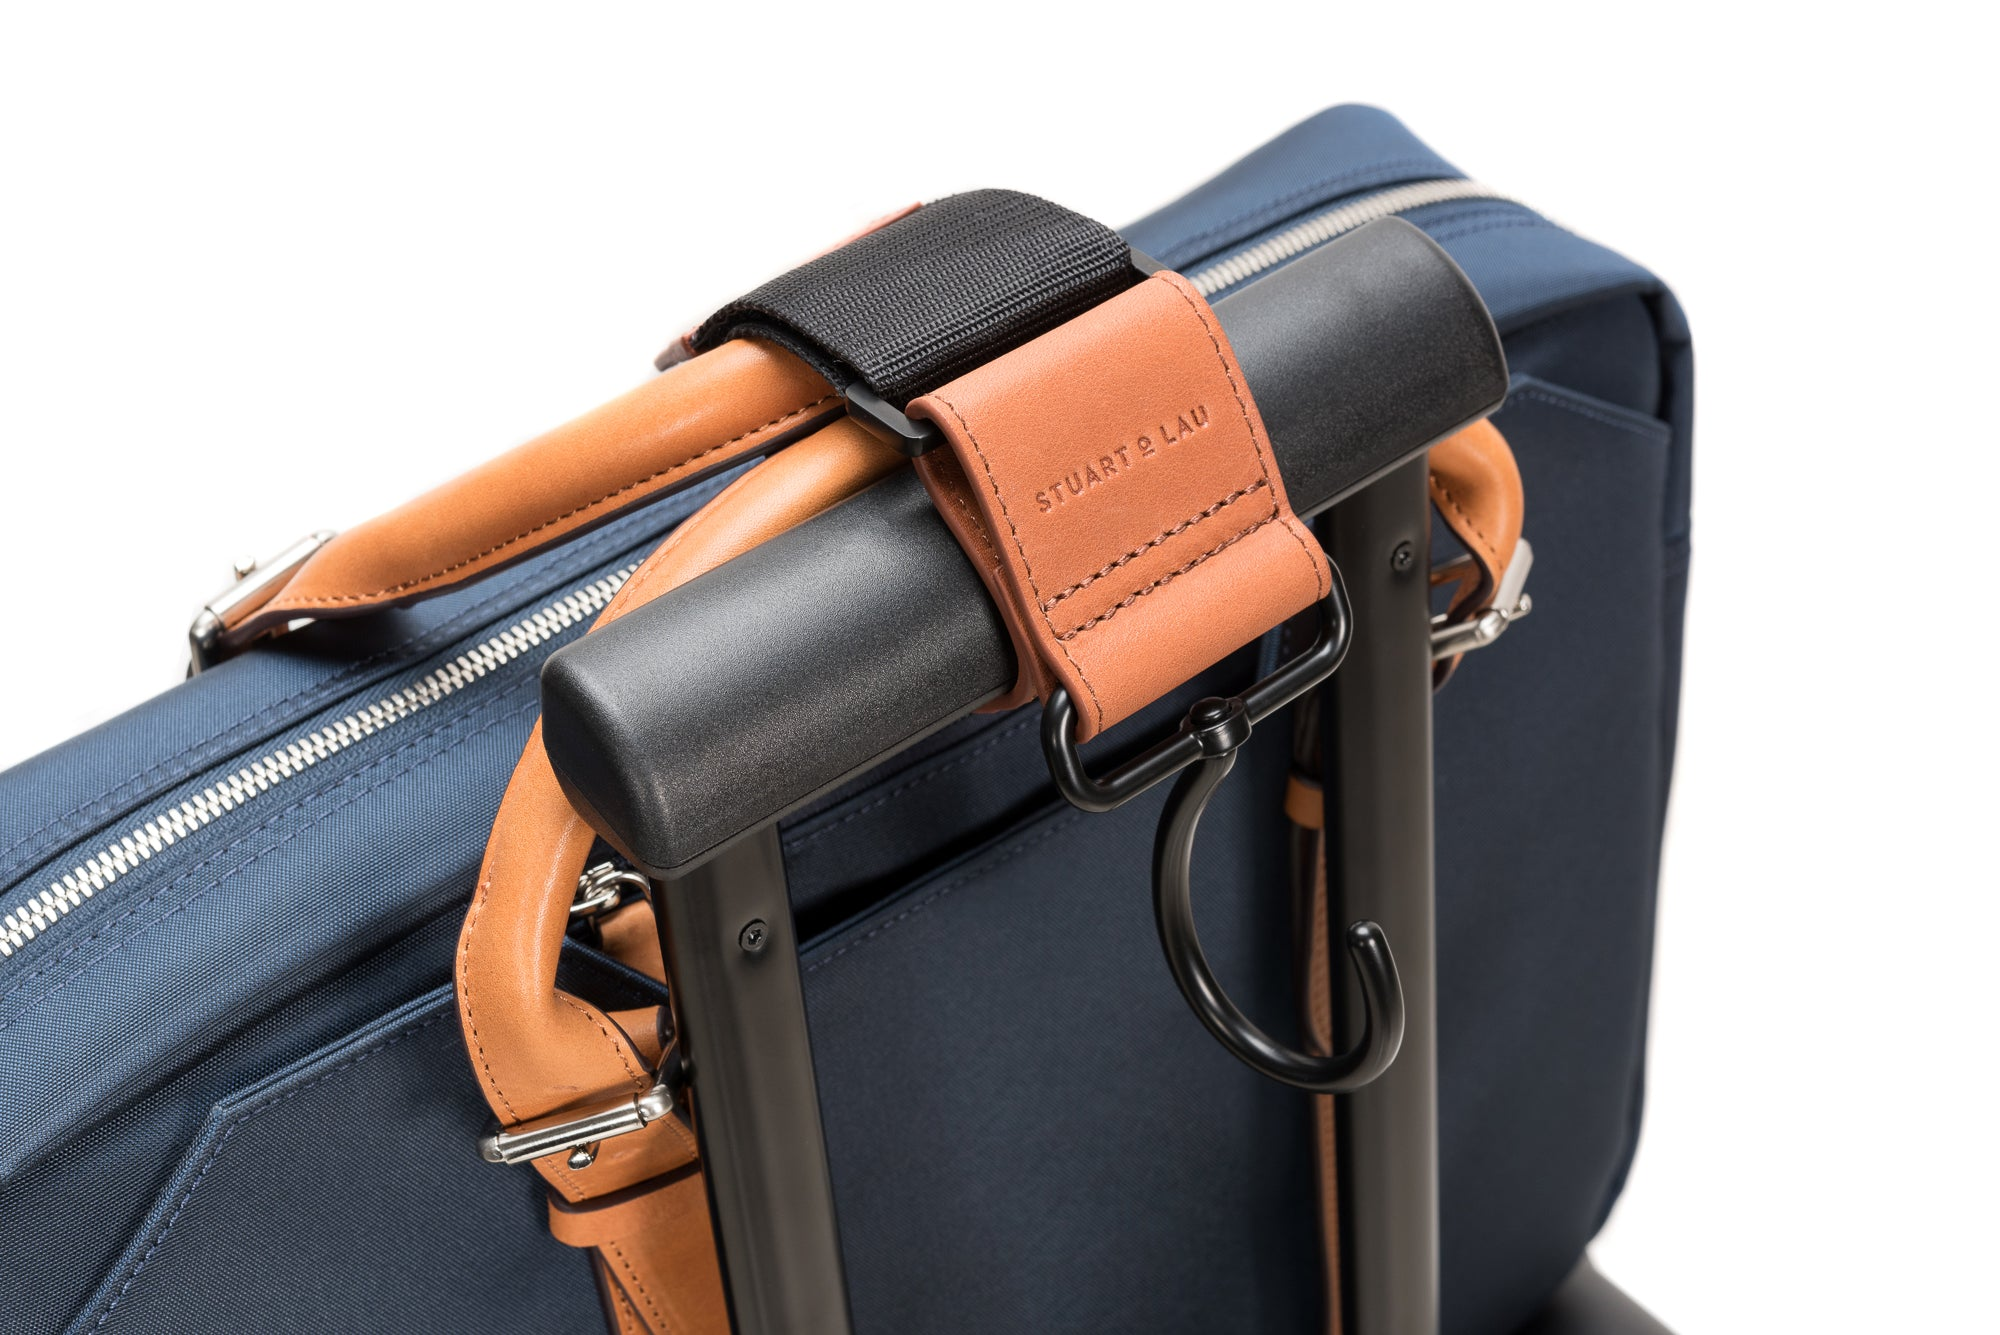 Stuart & Lau Luggage Strap - The Carry On Connector - Attach Bag to Suitcase